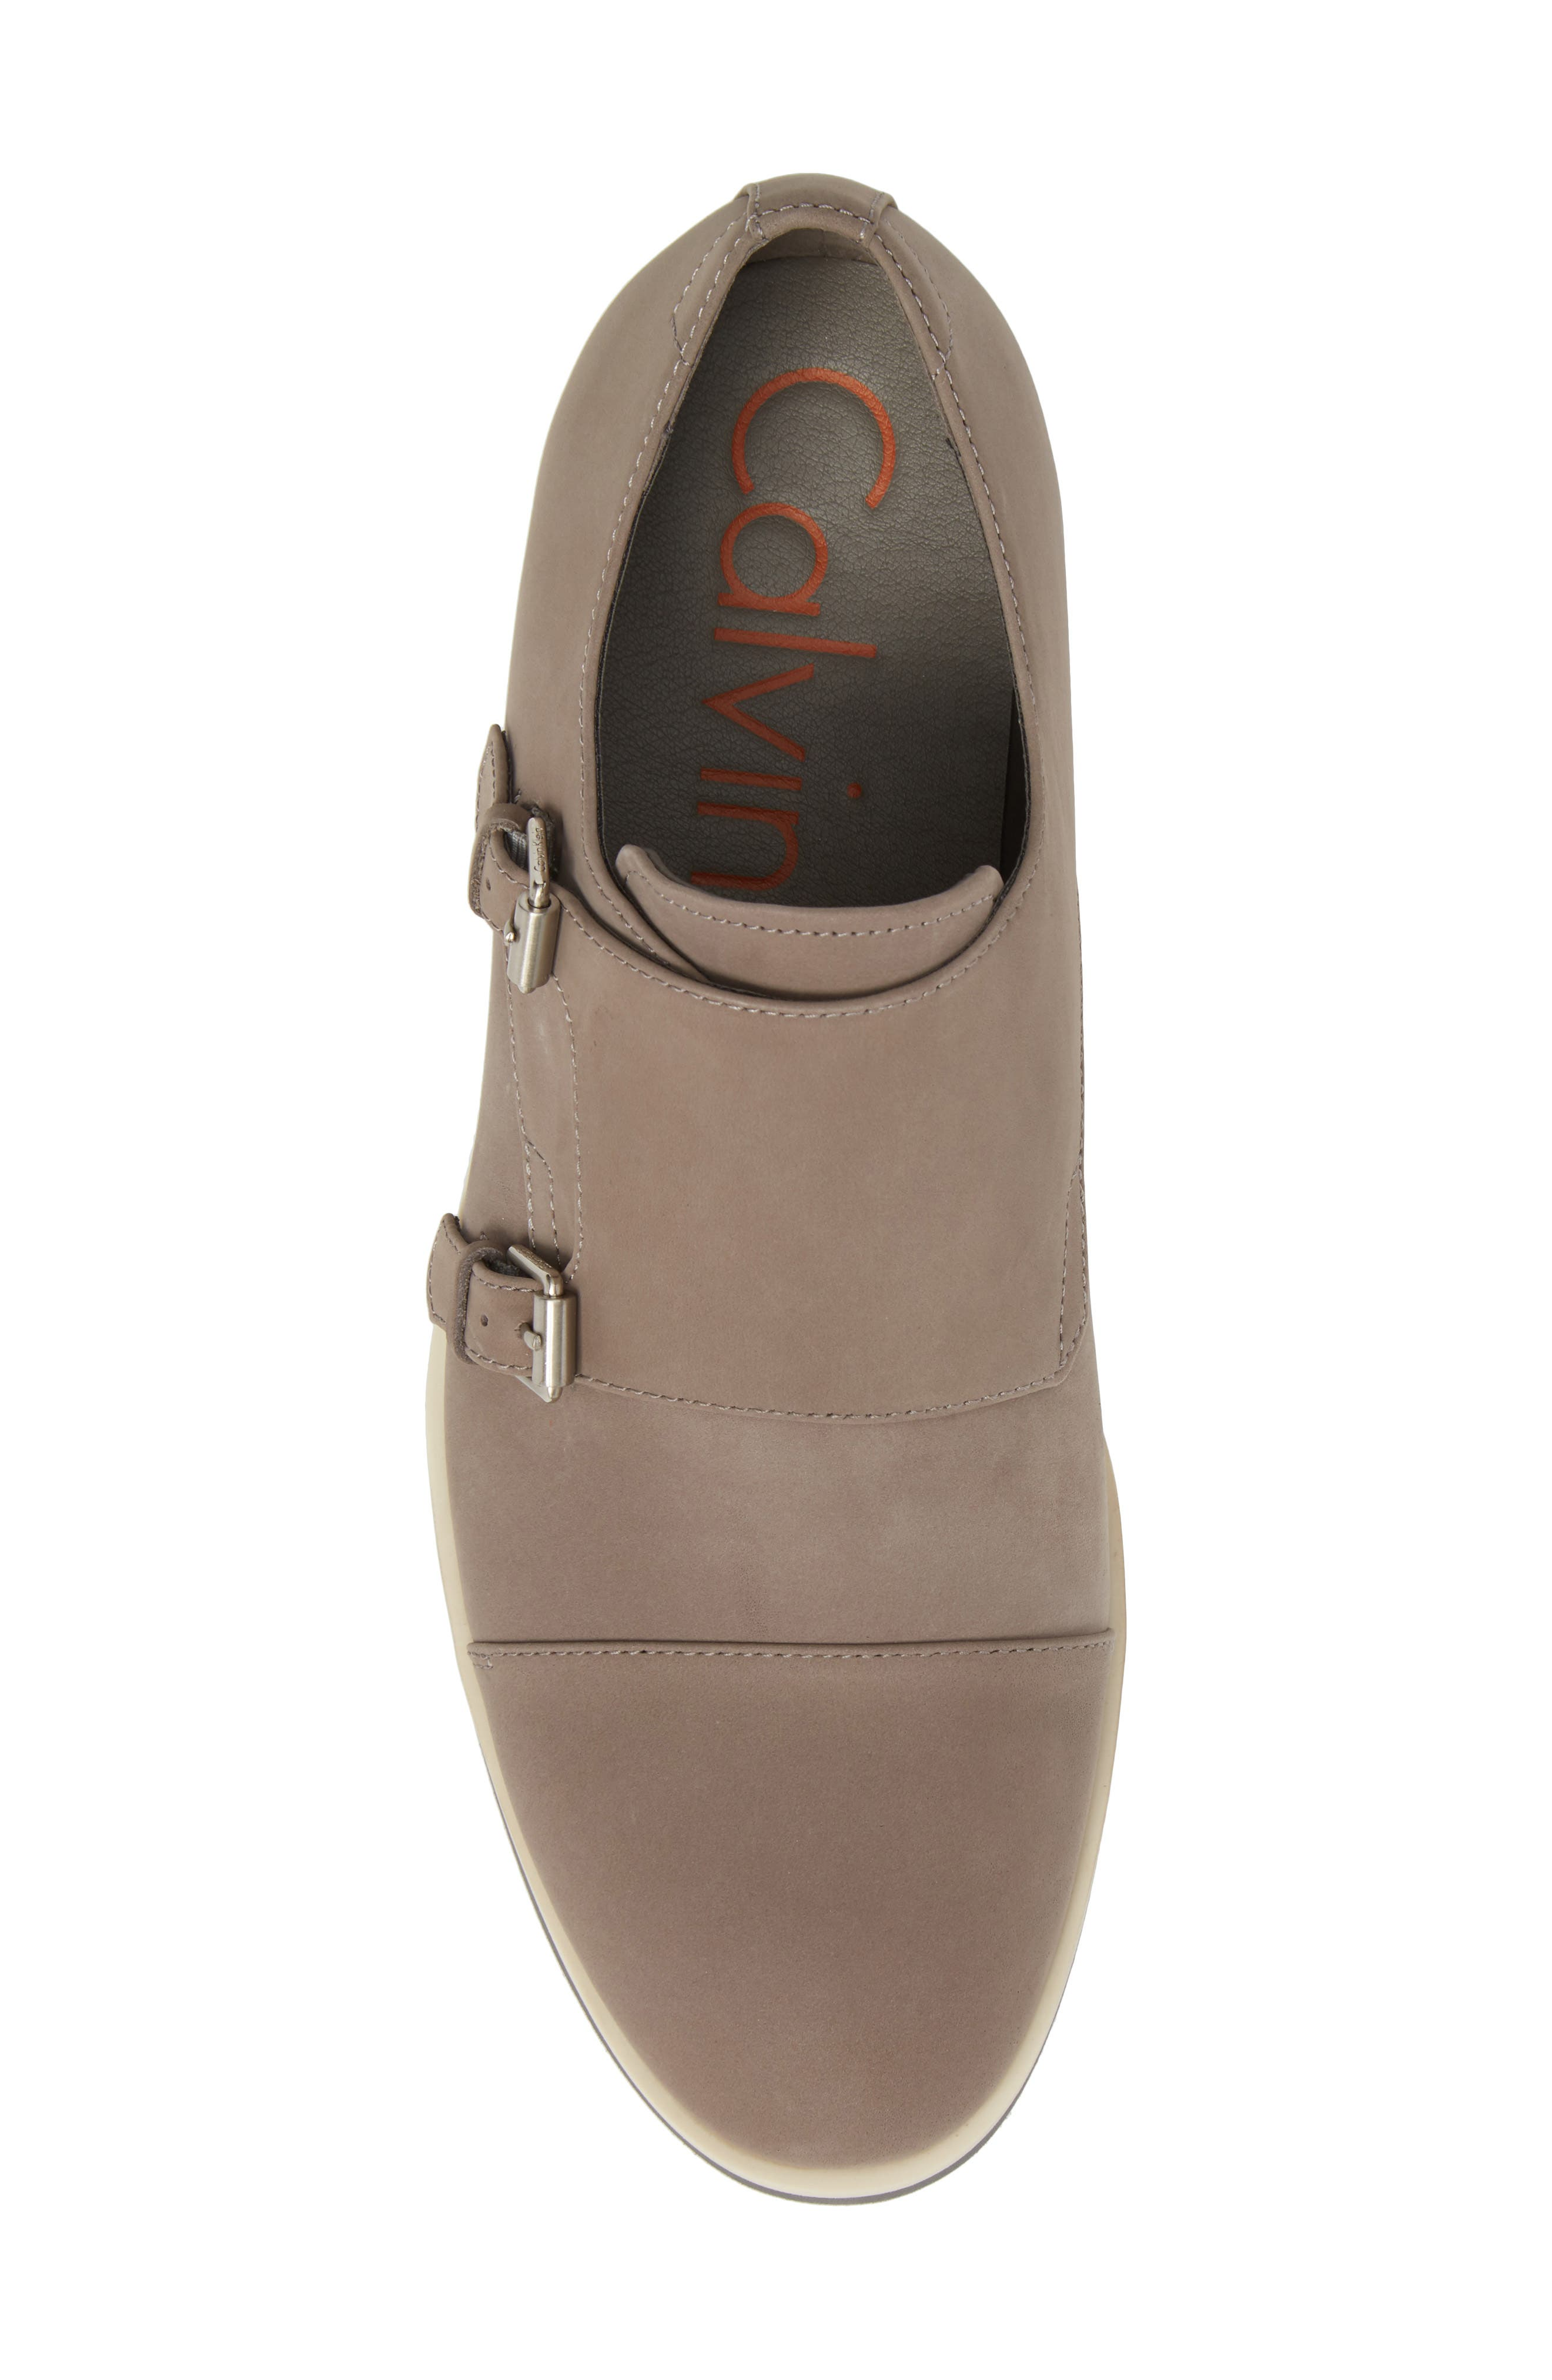 Finch Double Monk Strap Shoe,                             Alternate thumbnail 5, color,                             Toffee Leather